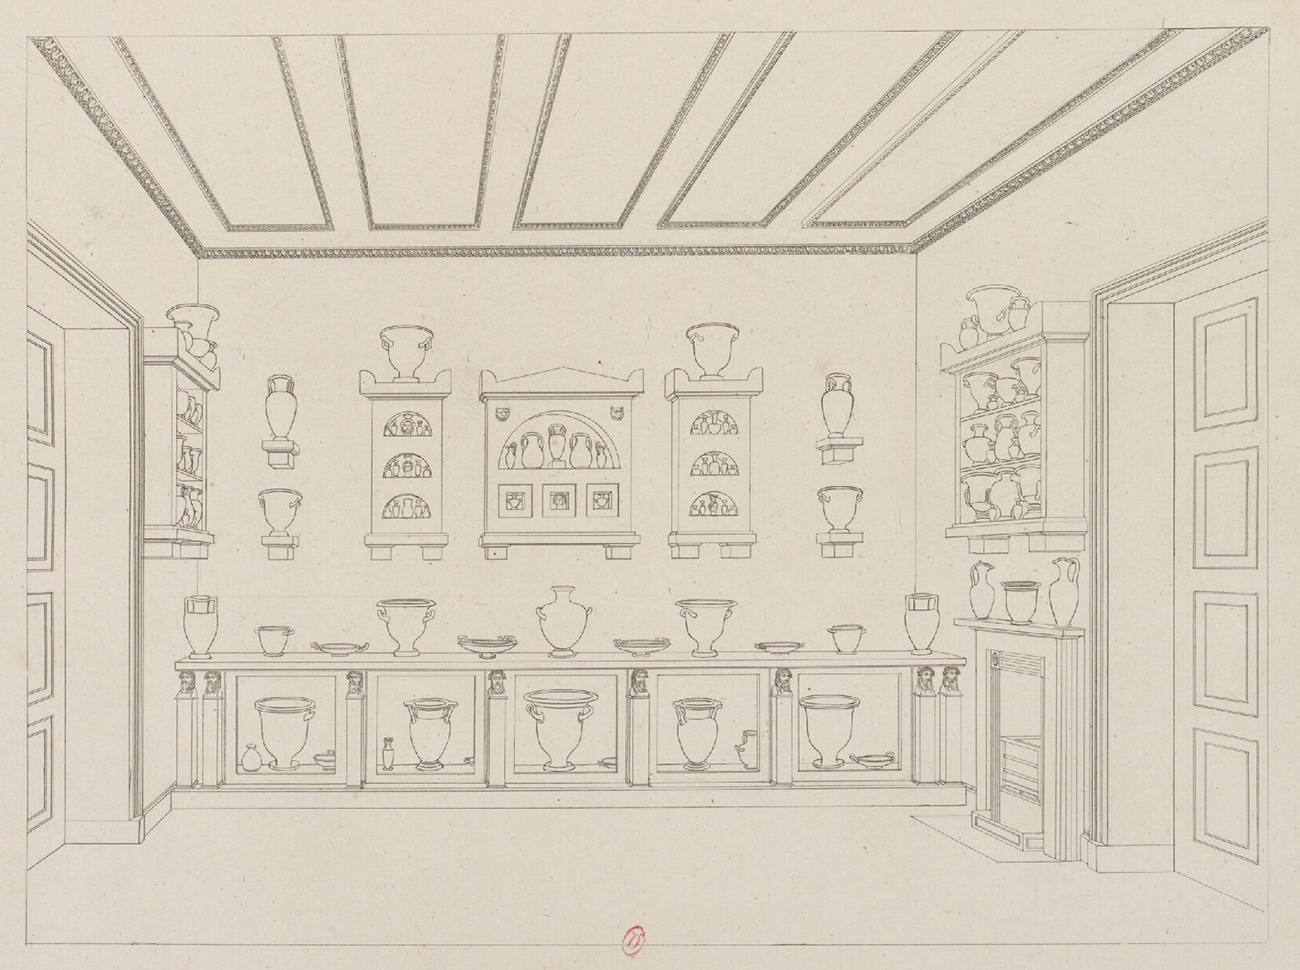 Line drawing of a gallery of Greek vases on shelves, on ledges on walls, and in cubbyholes